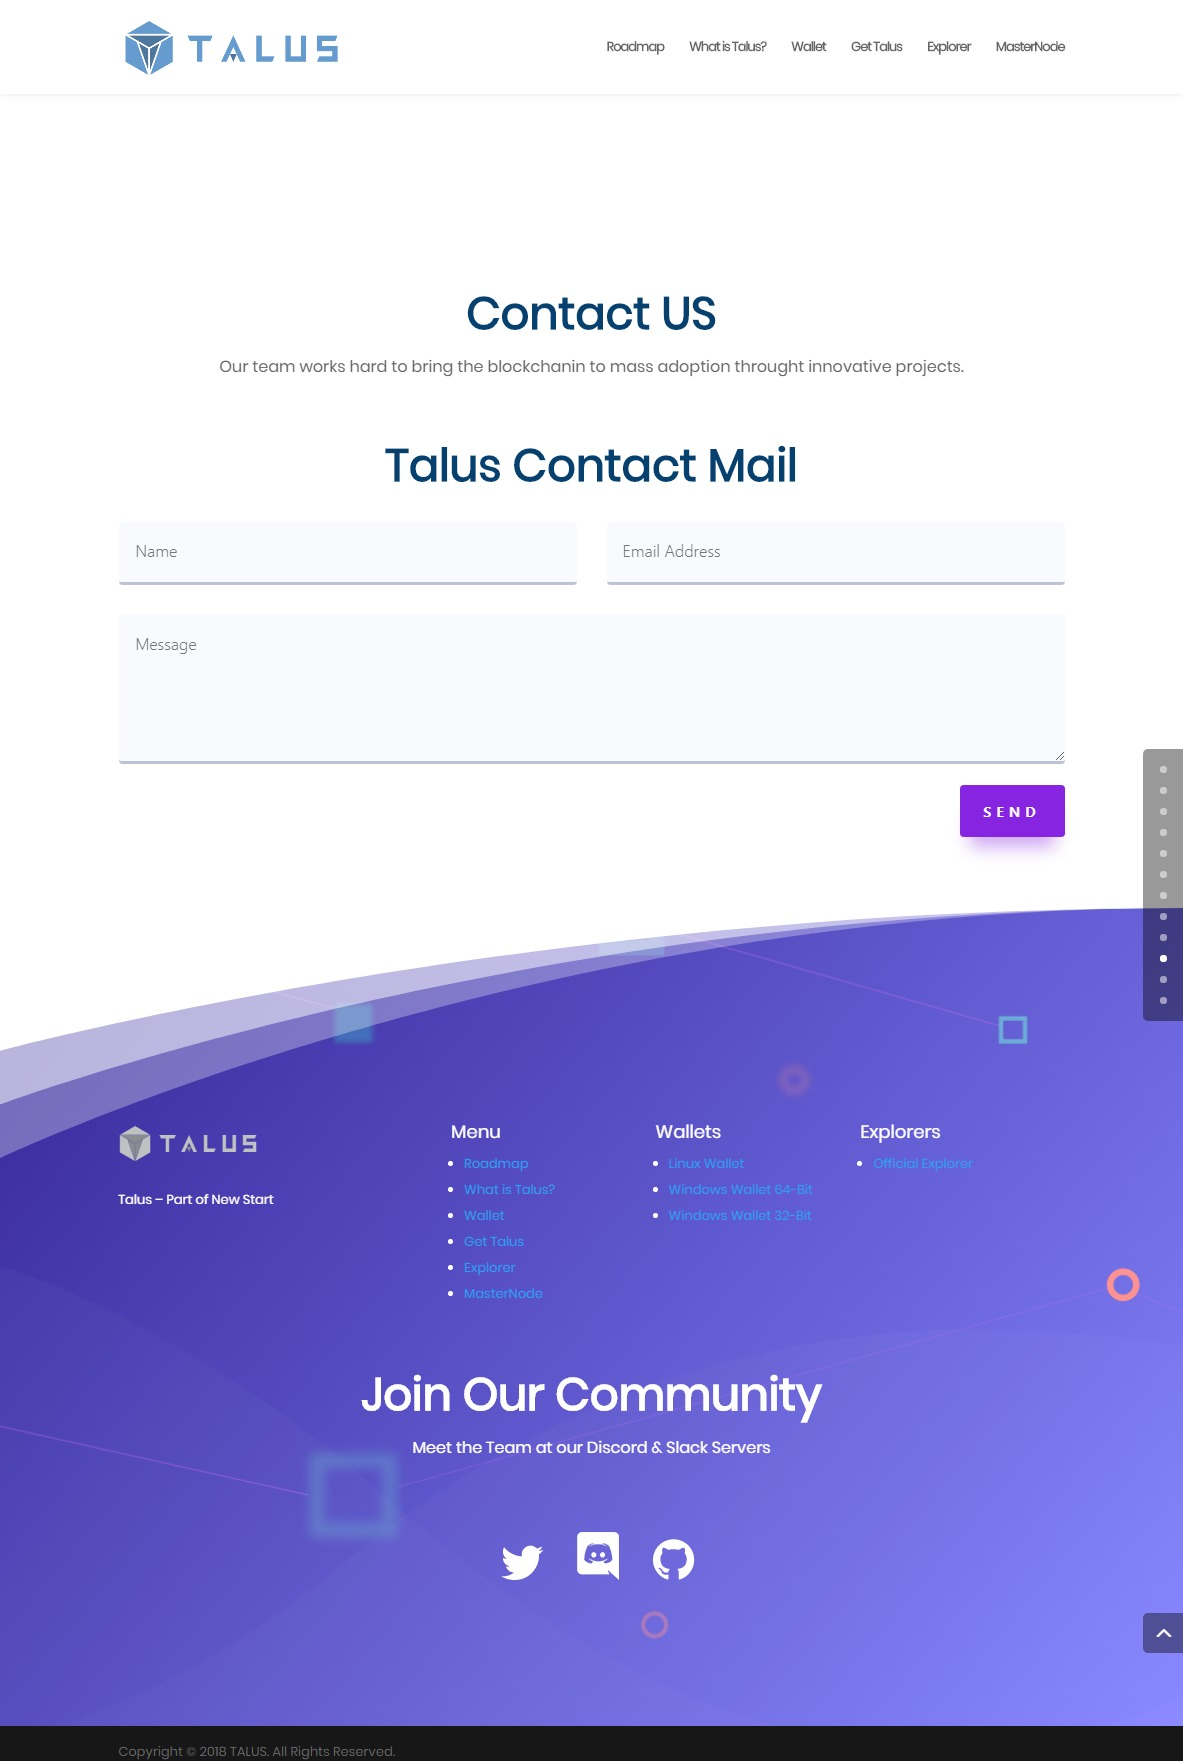 TALUS Decentralize exchange